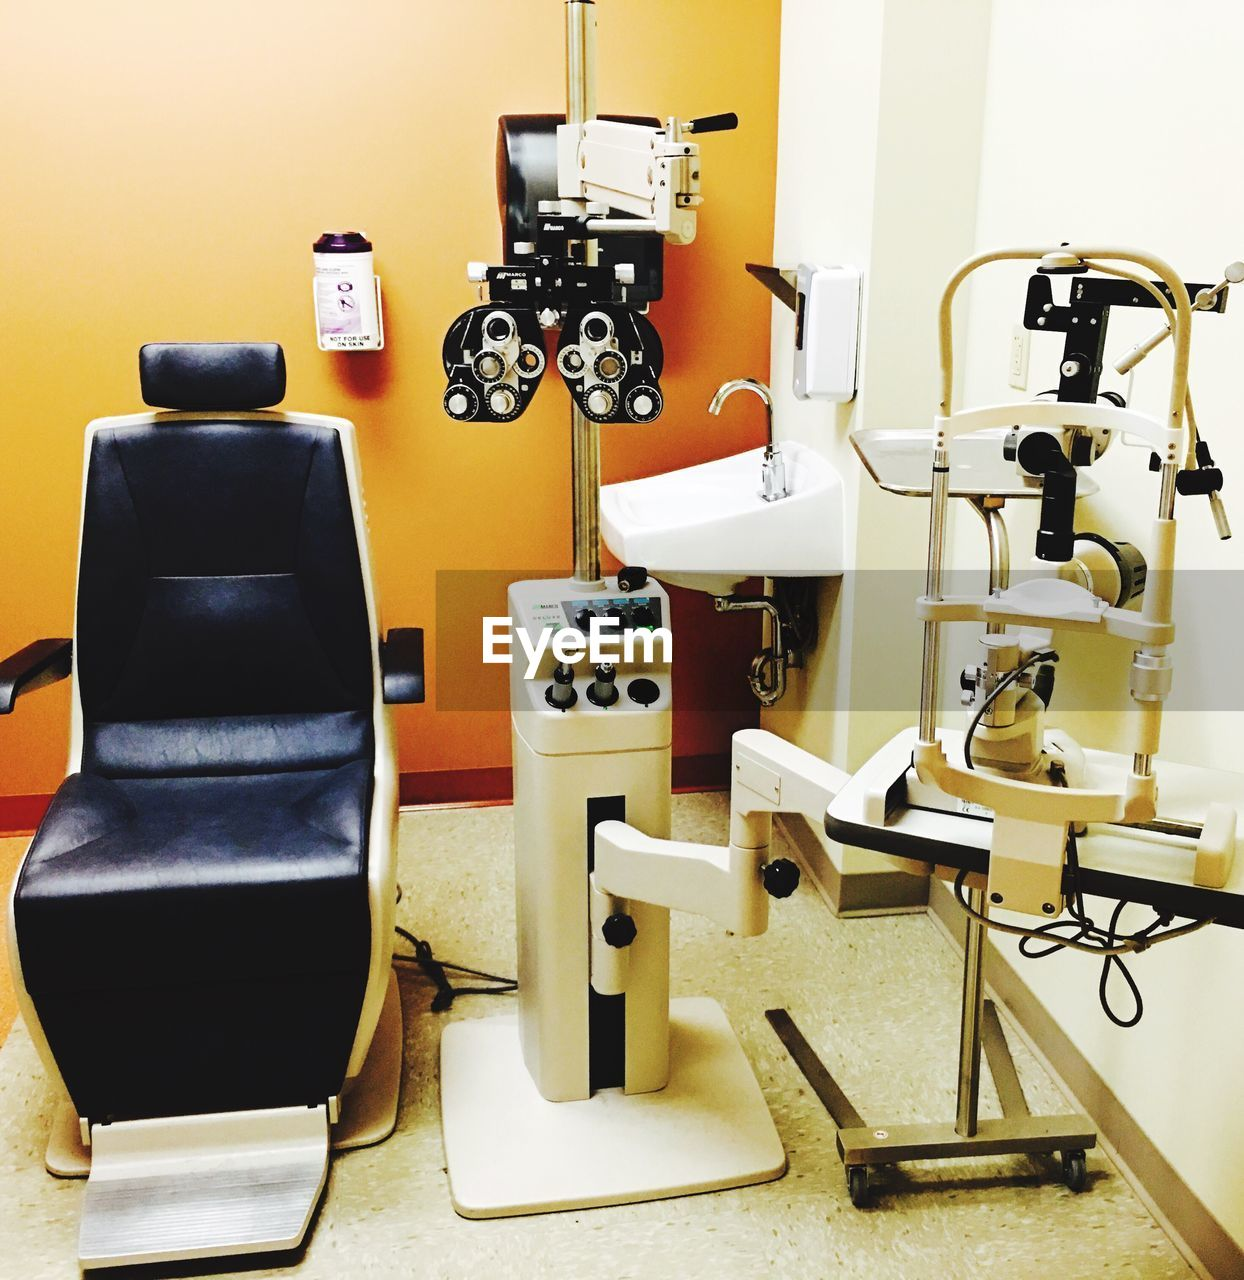 Empty chair with eye test equipment at clinic